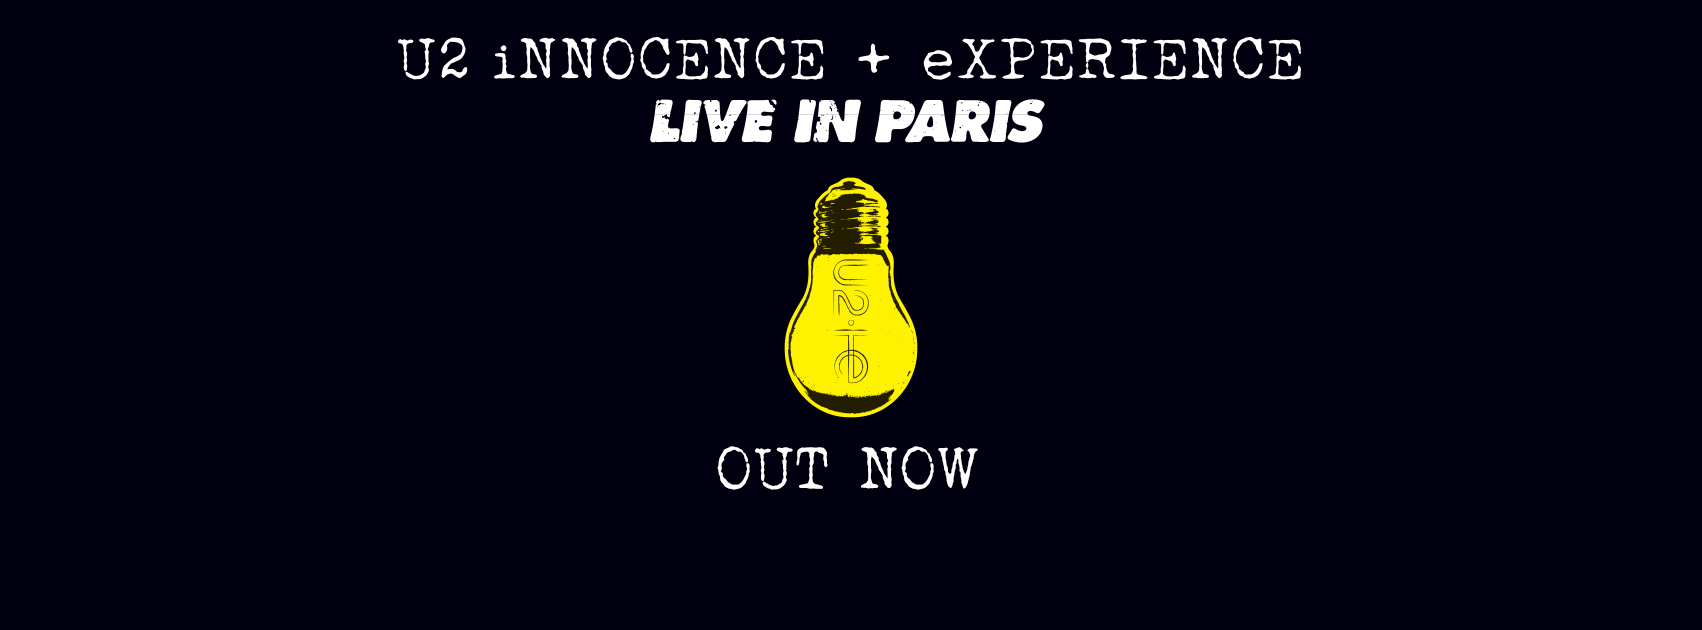 U2 OUT NOW U2 - iNNOCENCE + eXPERIENCE   LIVE IN PARIS